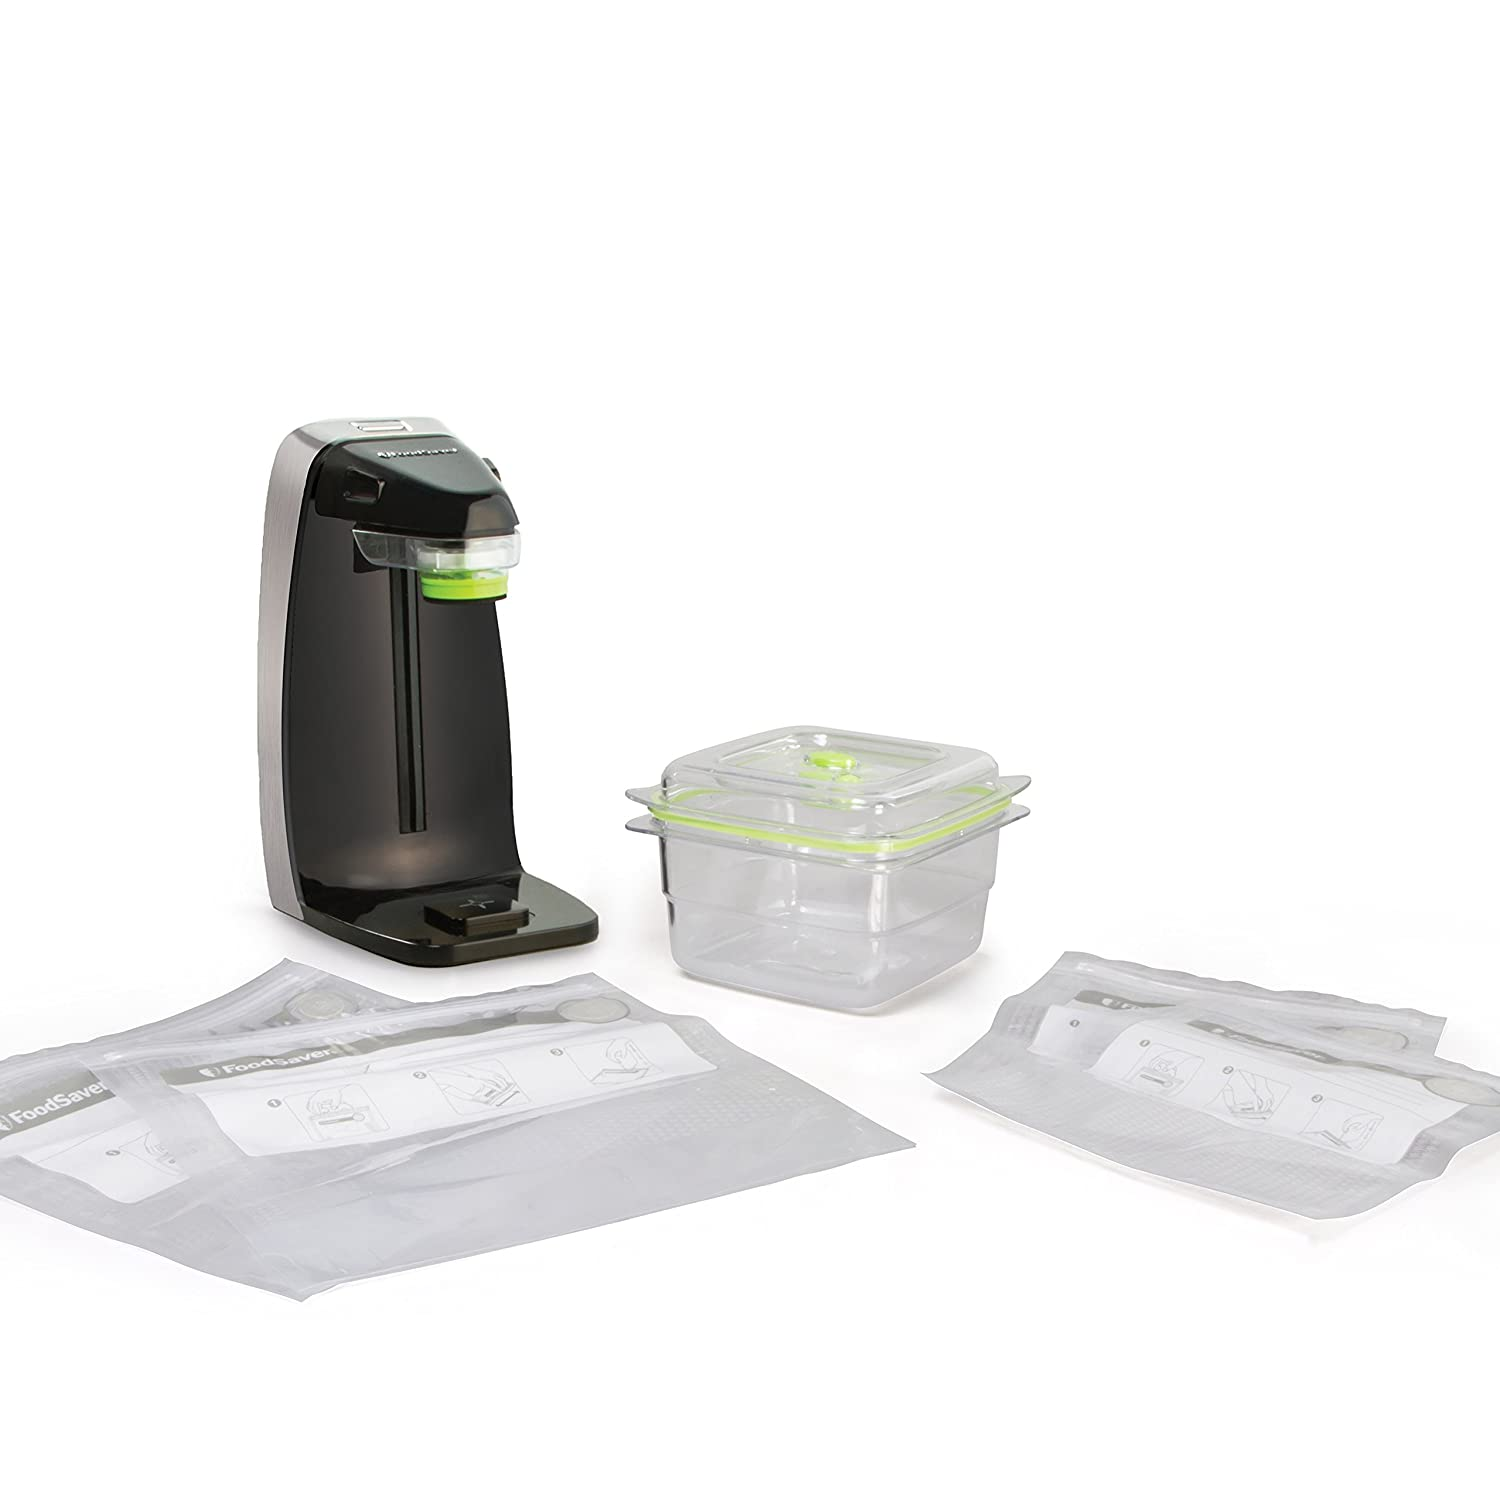 FoodSaver Fresh Food Preservation System, Space Saver